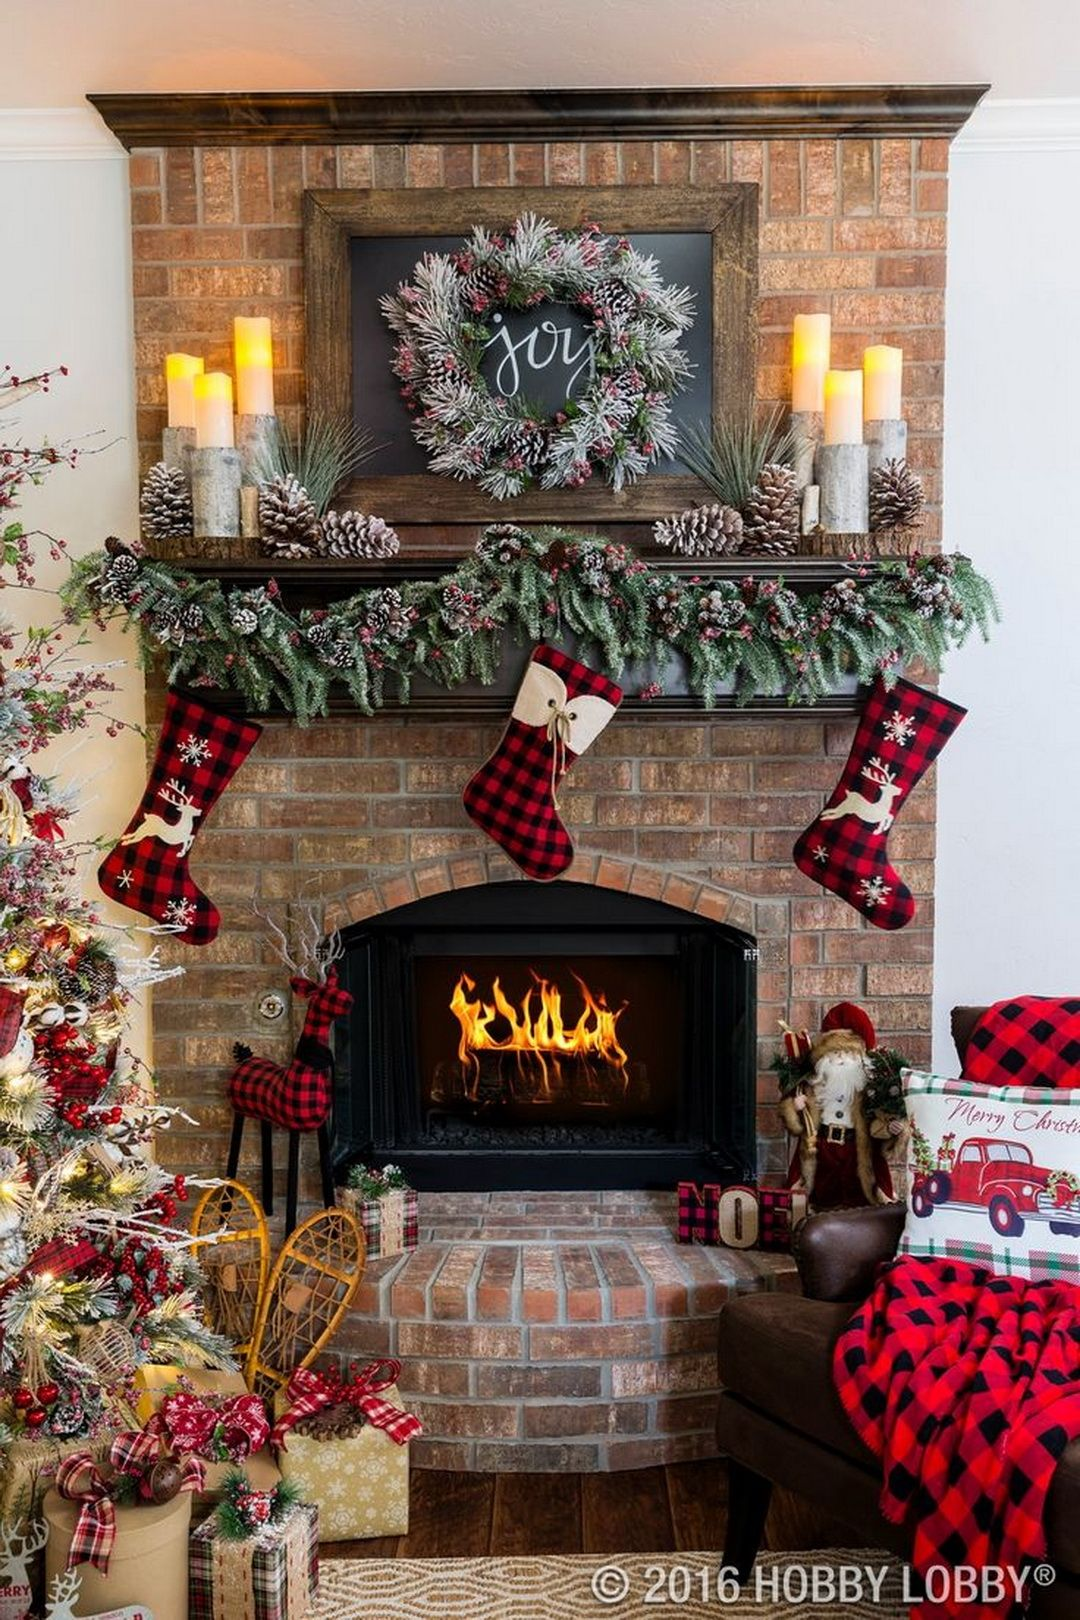 Christmas Decor Cozy Cabin Charm Meets Traditional Holiday By Coupling Warm And Rustic Accent Pieces With Elegant